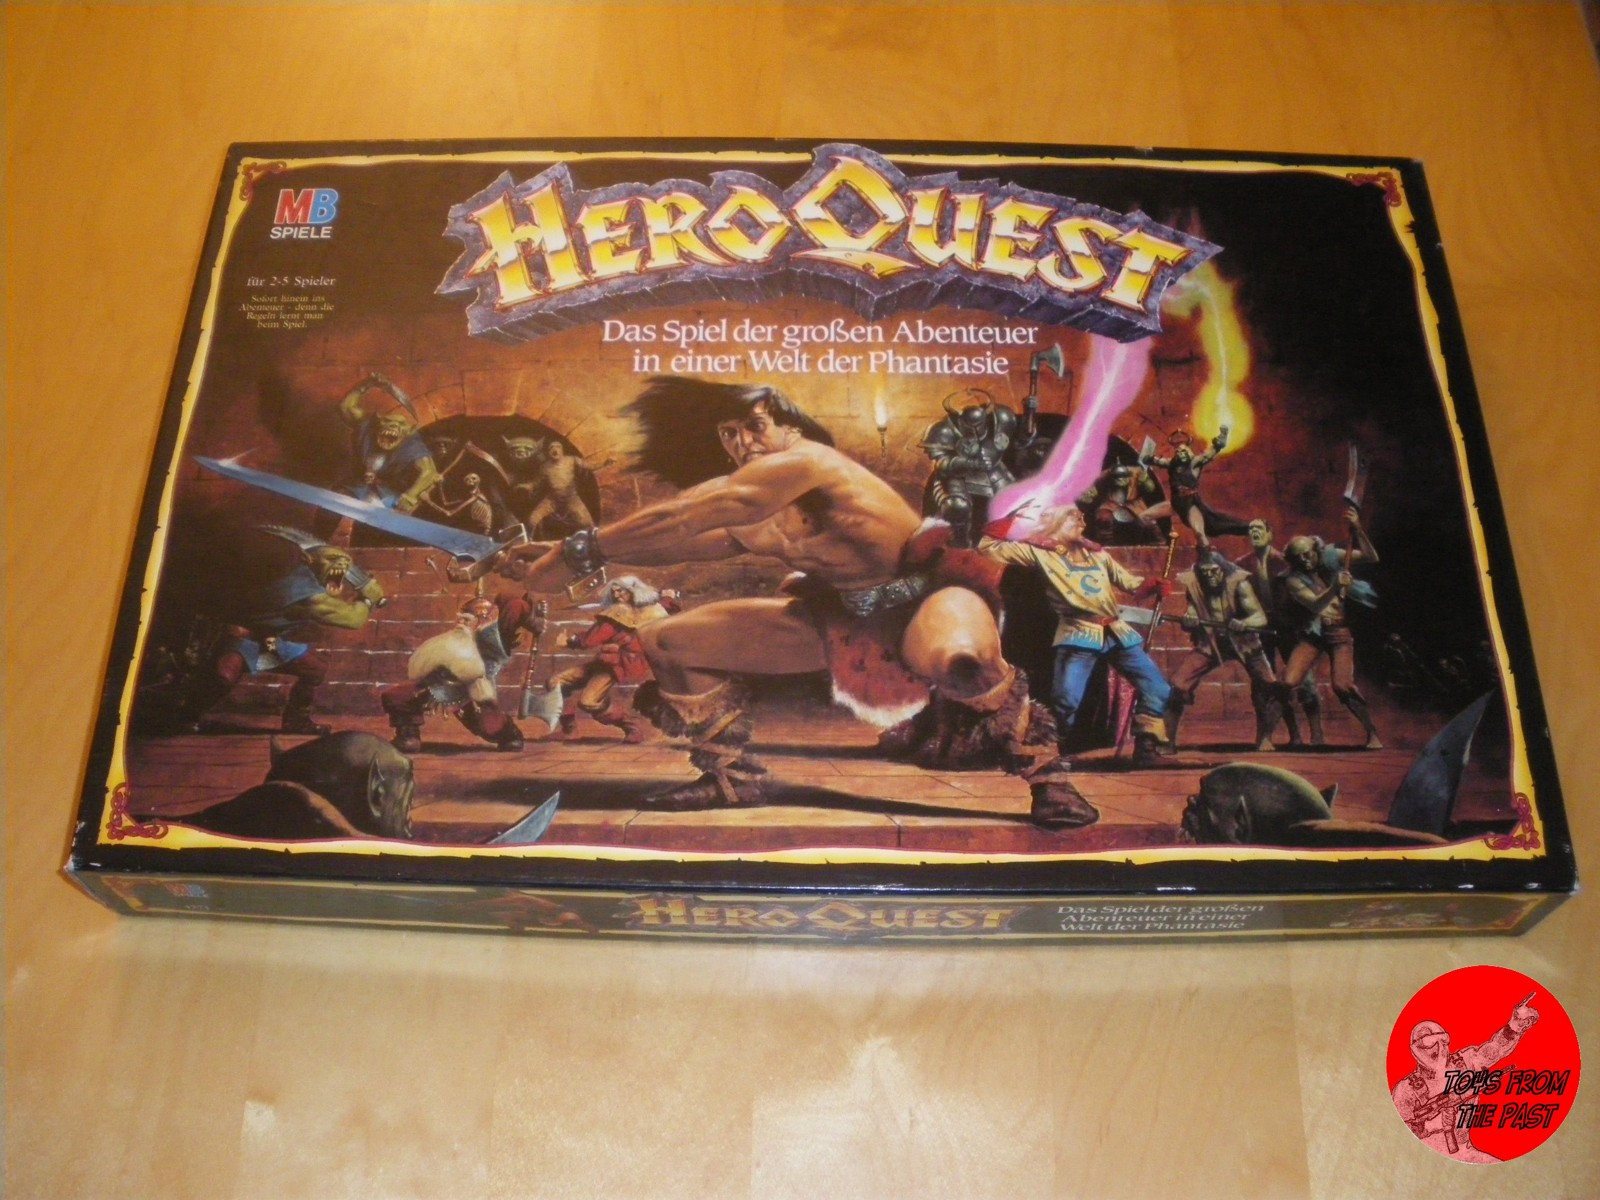 Toys From The Past 83 MB HERO QUEST EXPANSION SETS